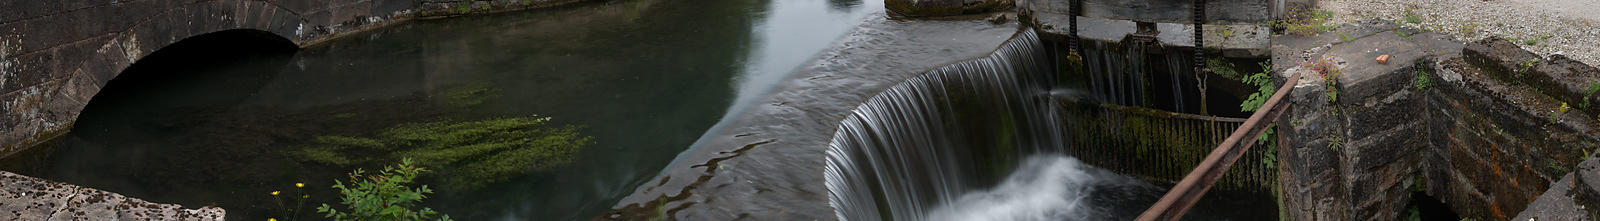 canal_water1